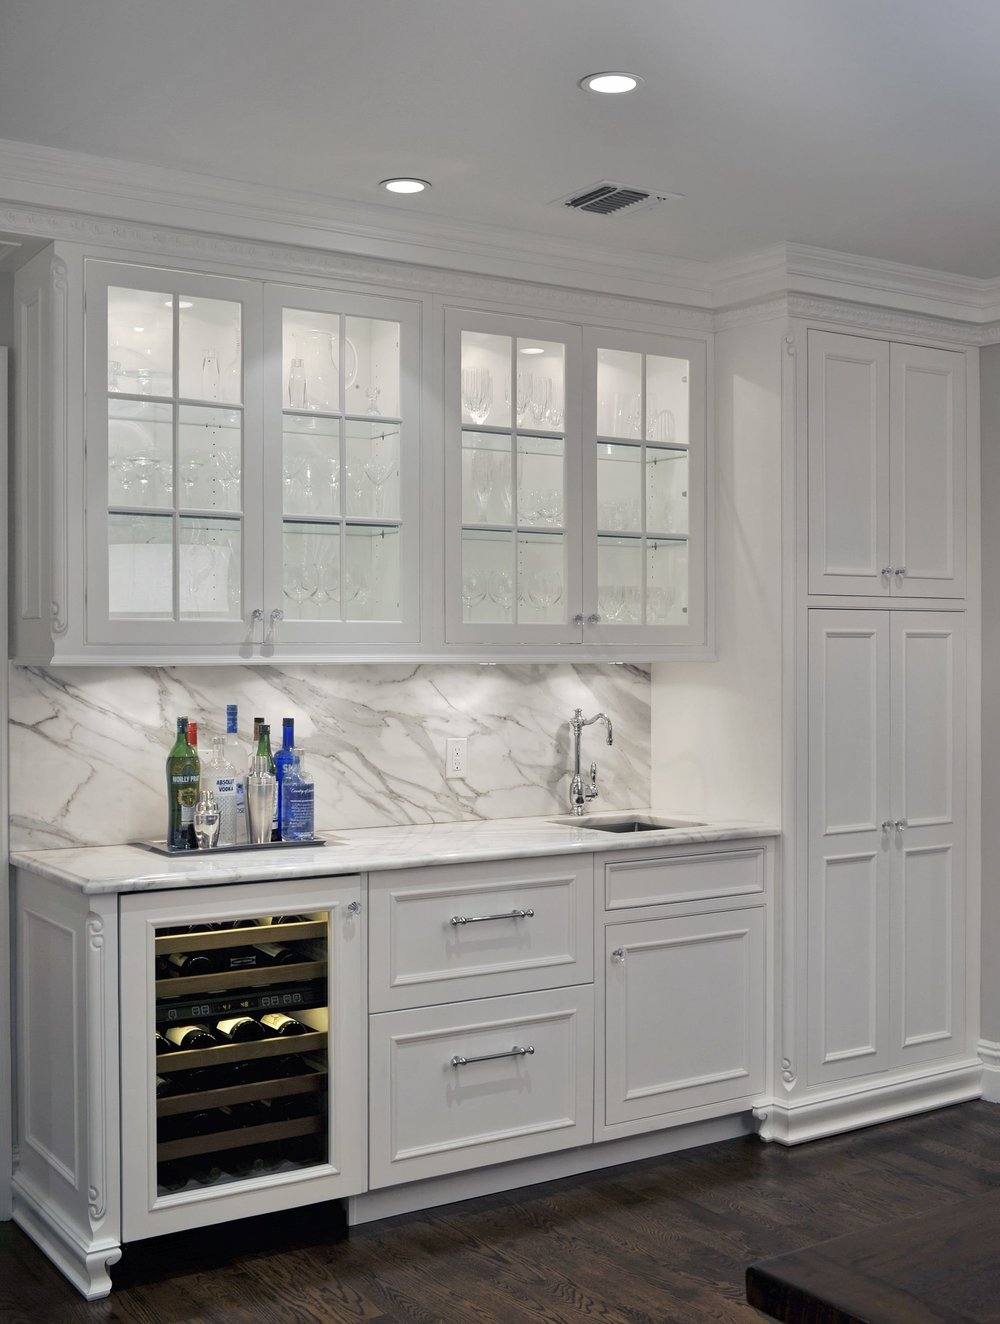 Transitional style kitchen with wine glass cabinet